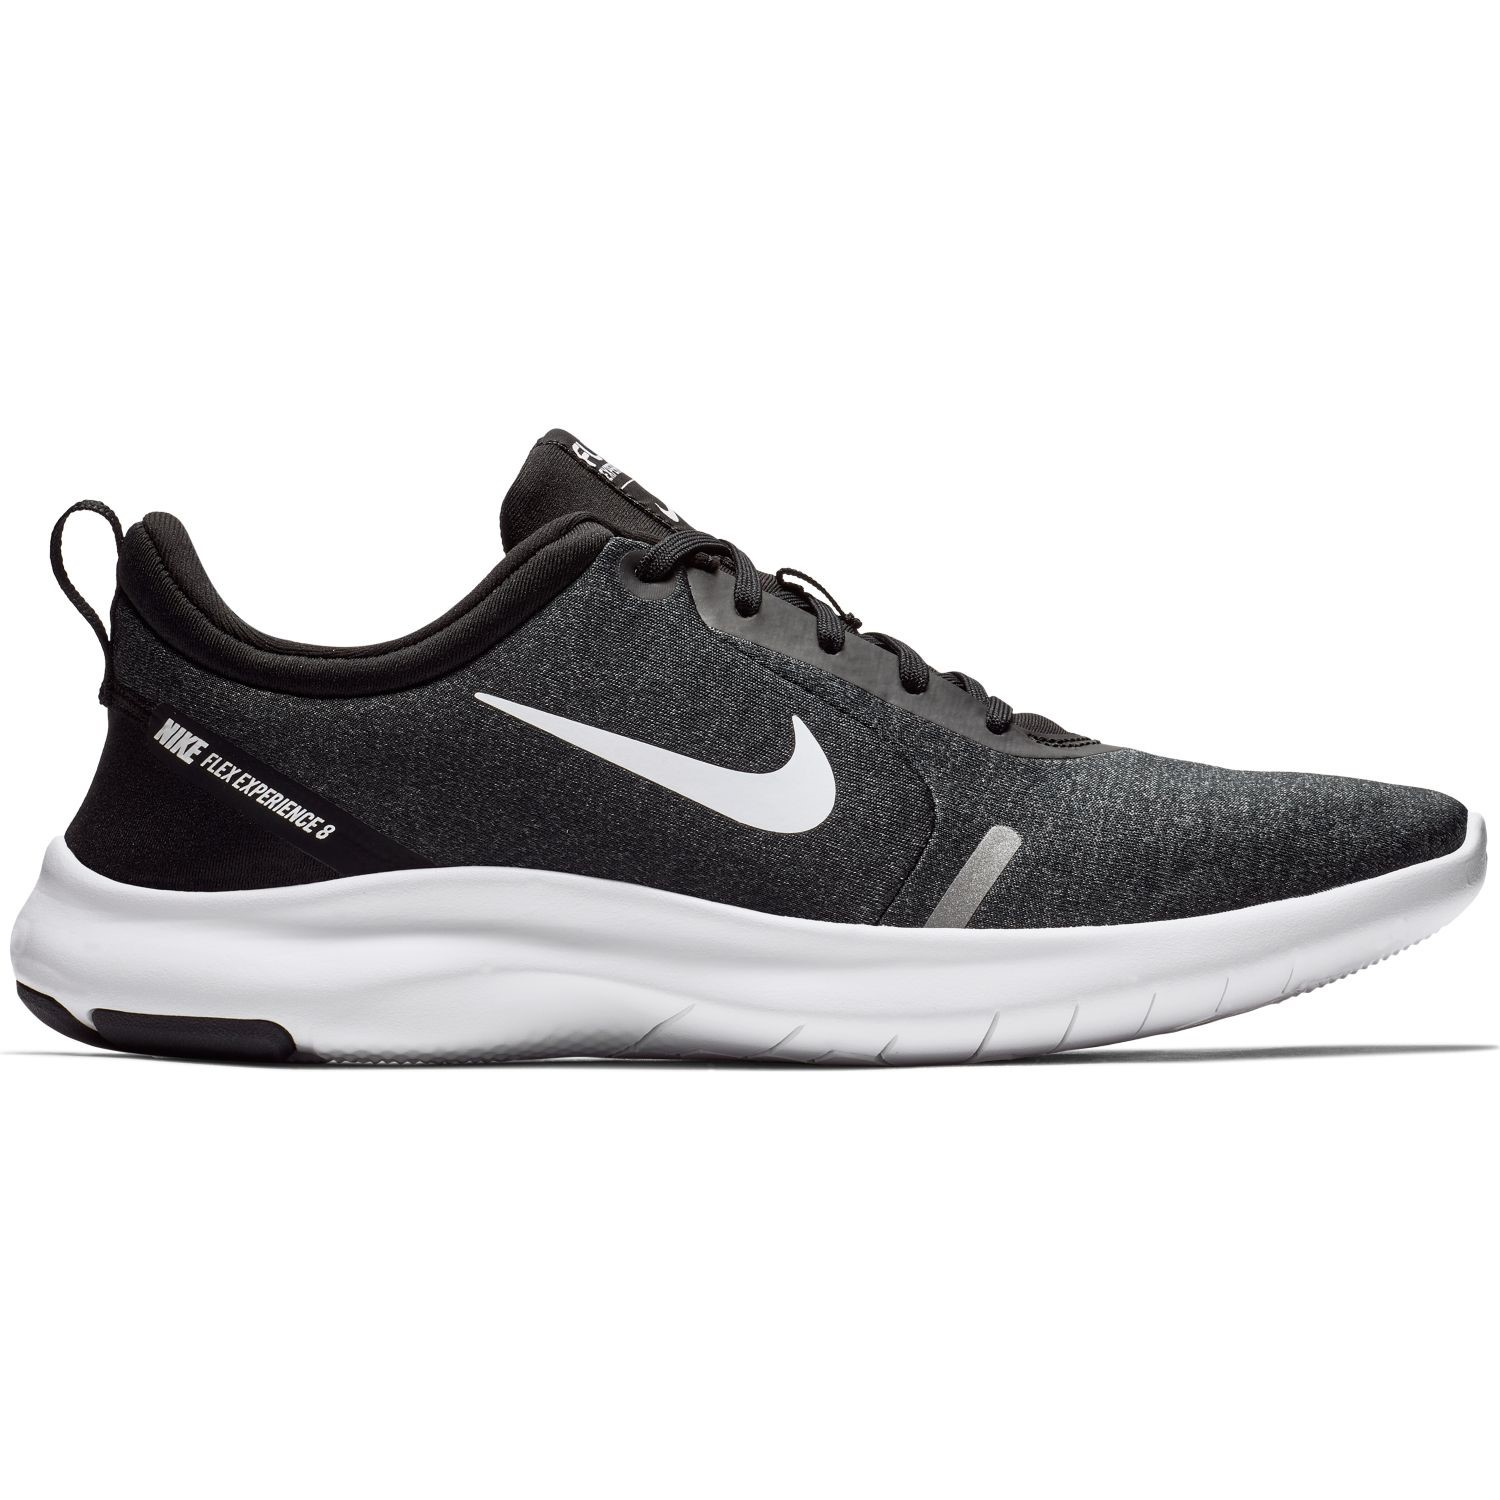 c5ac85bd04cd Nike Flex Experience RN 8 - Mens Running Shoes - Black White Cool Grey